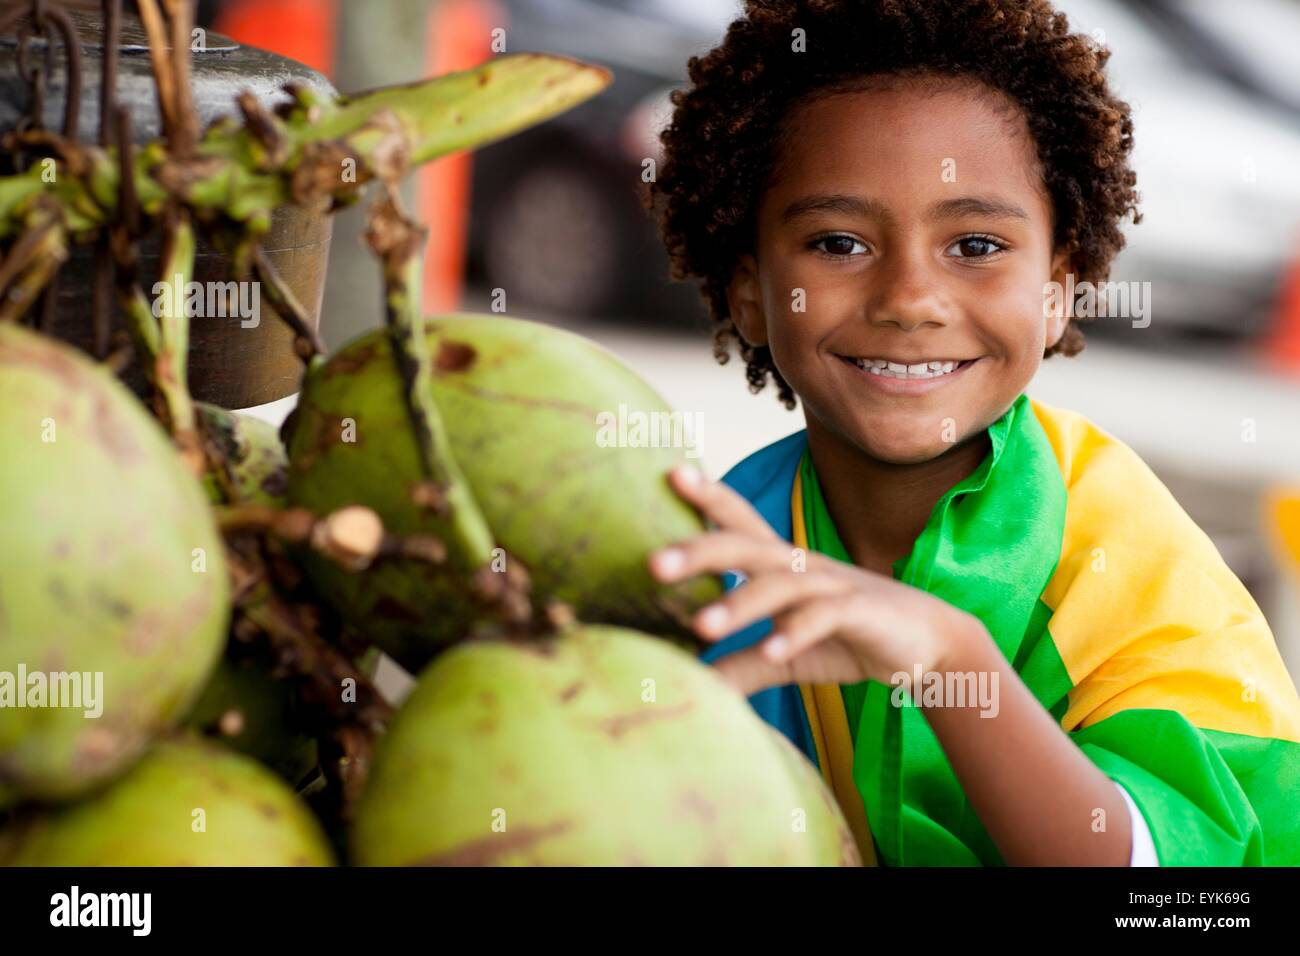 Portrait of boy wrapped in Brazilian flag selecting coconut on Ipanema beach, Rio De Janeiro, Brazil - Stock Image